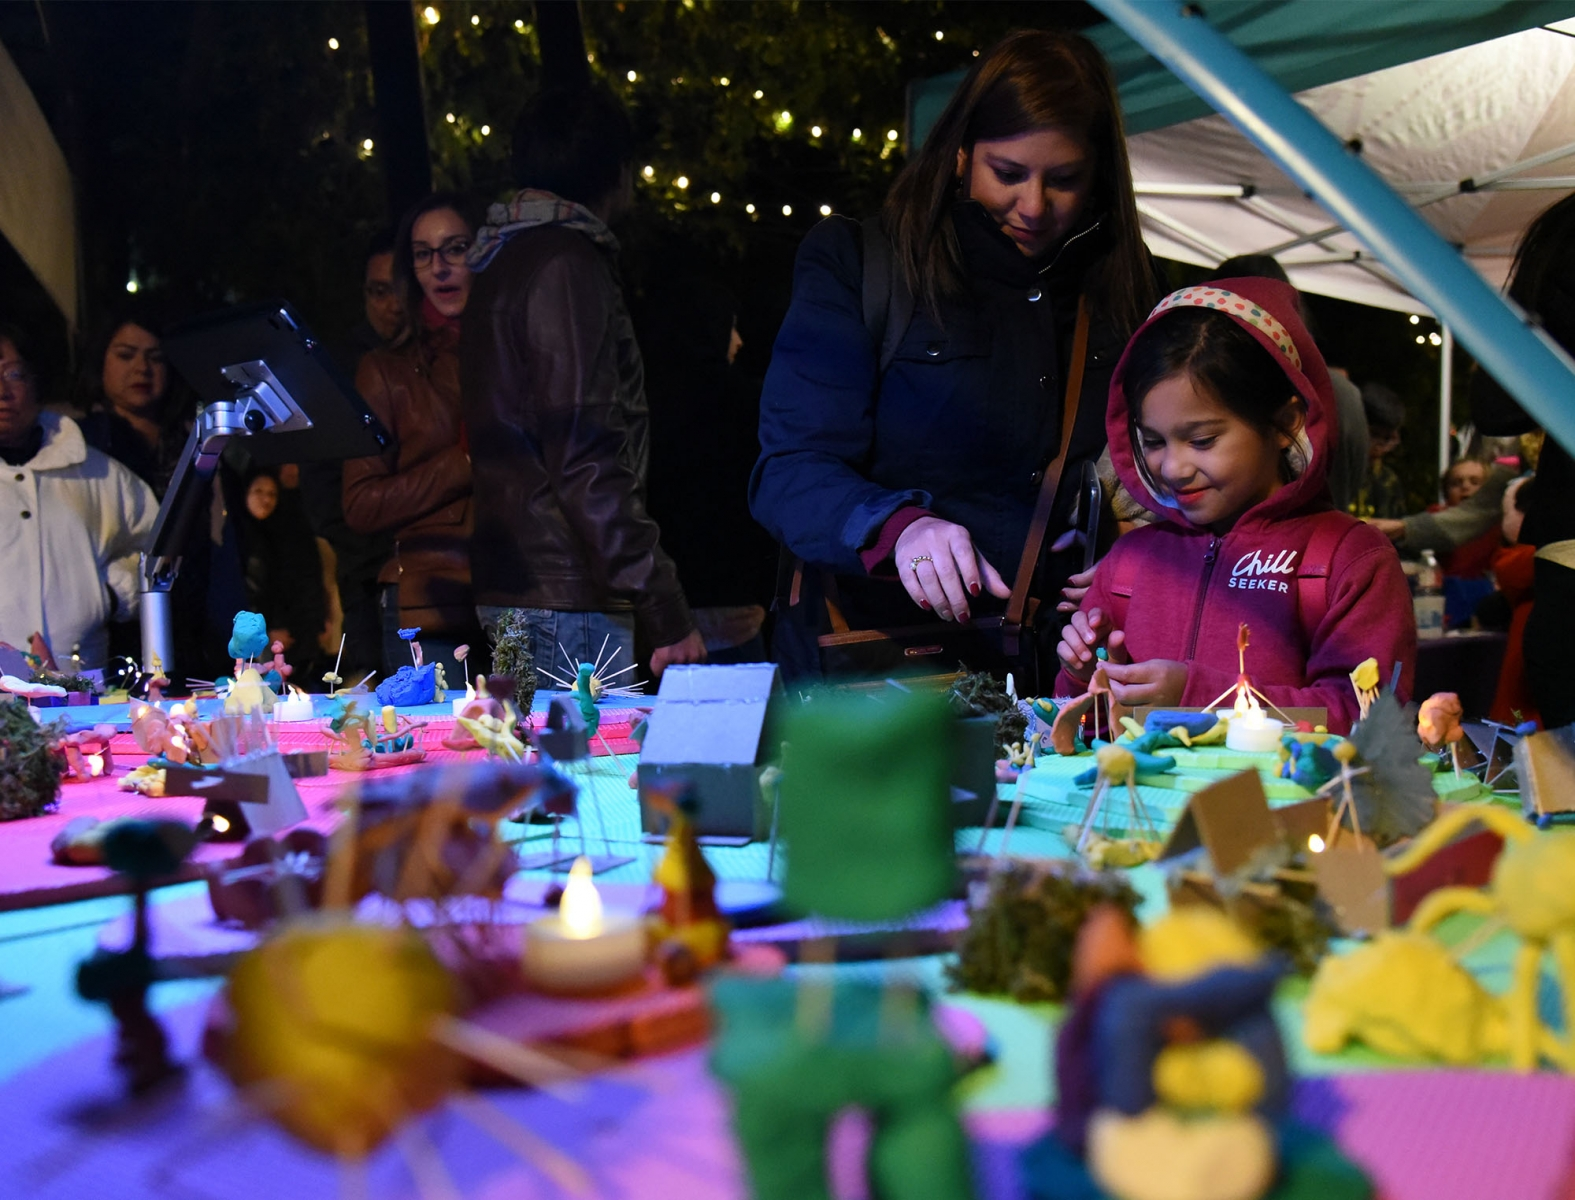 Cynthia Martinez helps daughter Sierra Borrego place her creation in a mock town created Nov. 11 during Luminaria. <em><b>Photo by V. Finster | Heron</b></em>